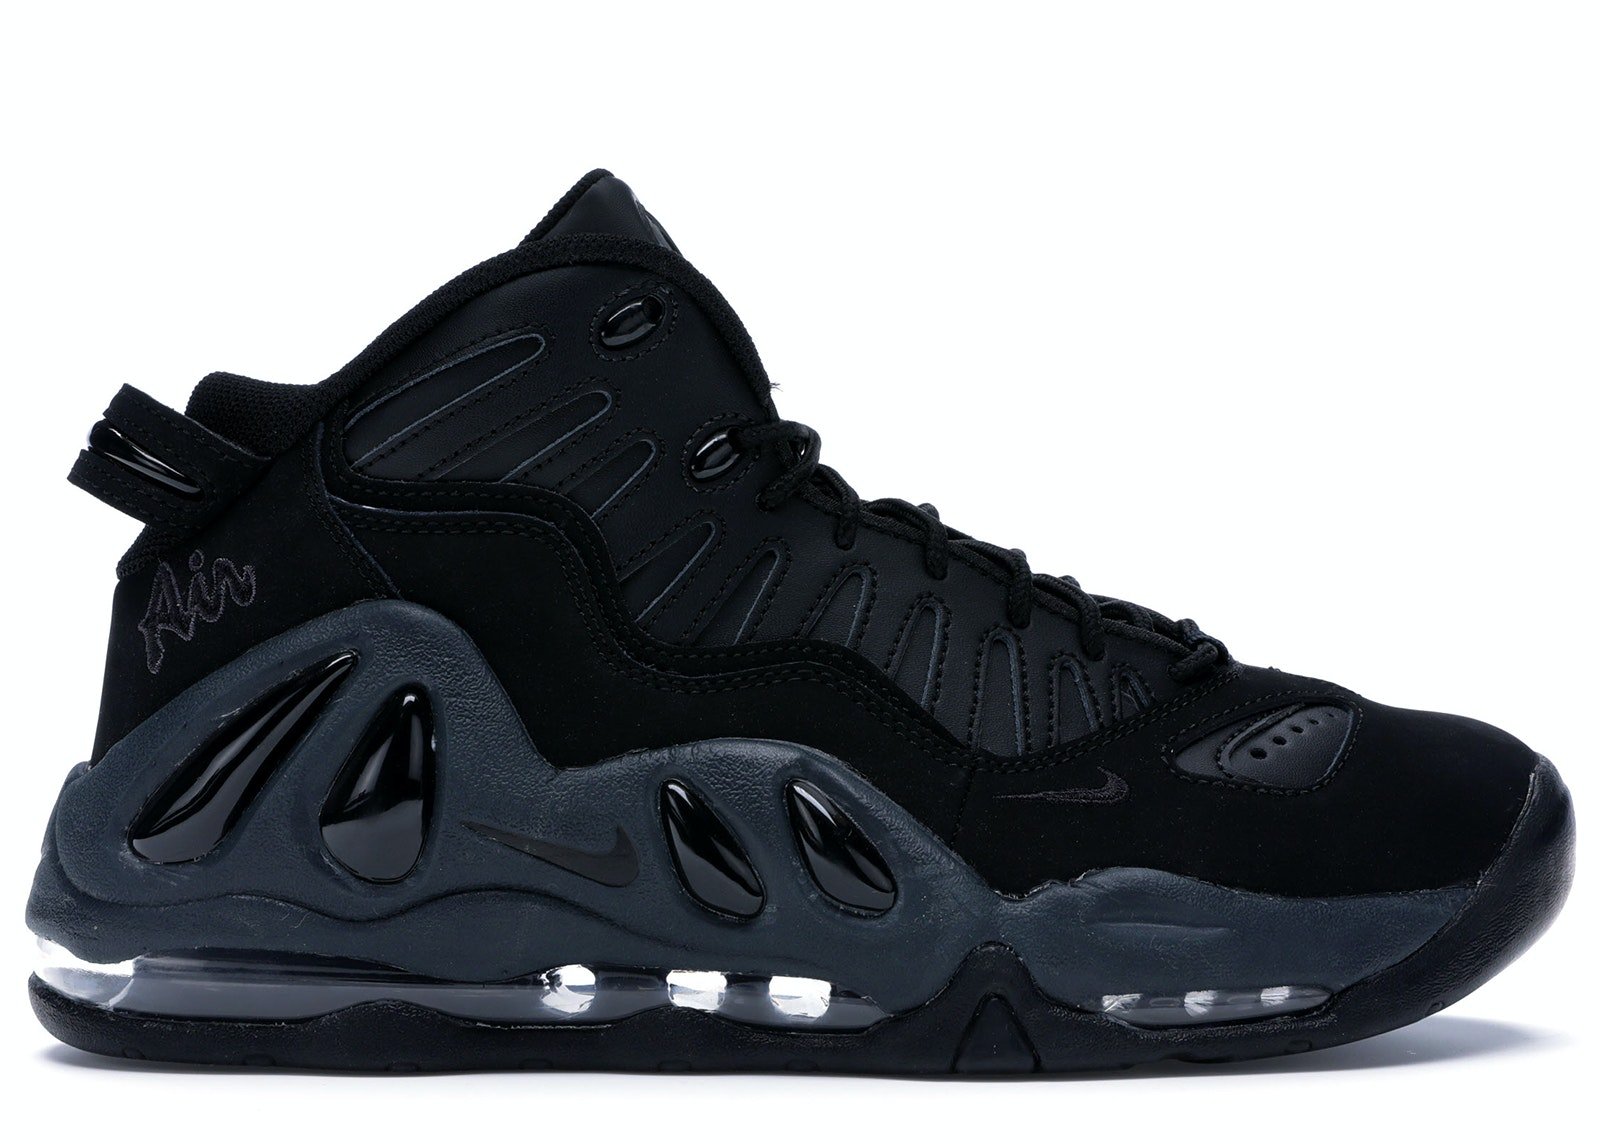 Air Max Uptempo 97 Black Anthracite